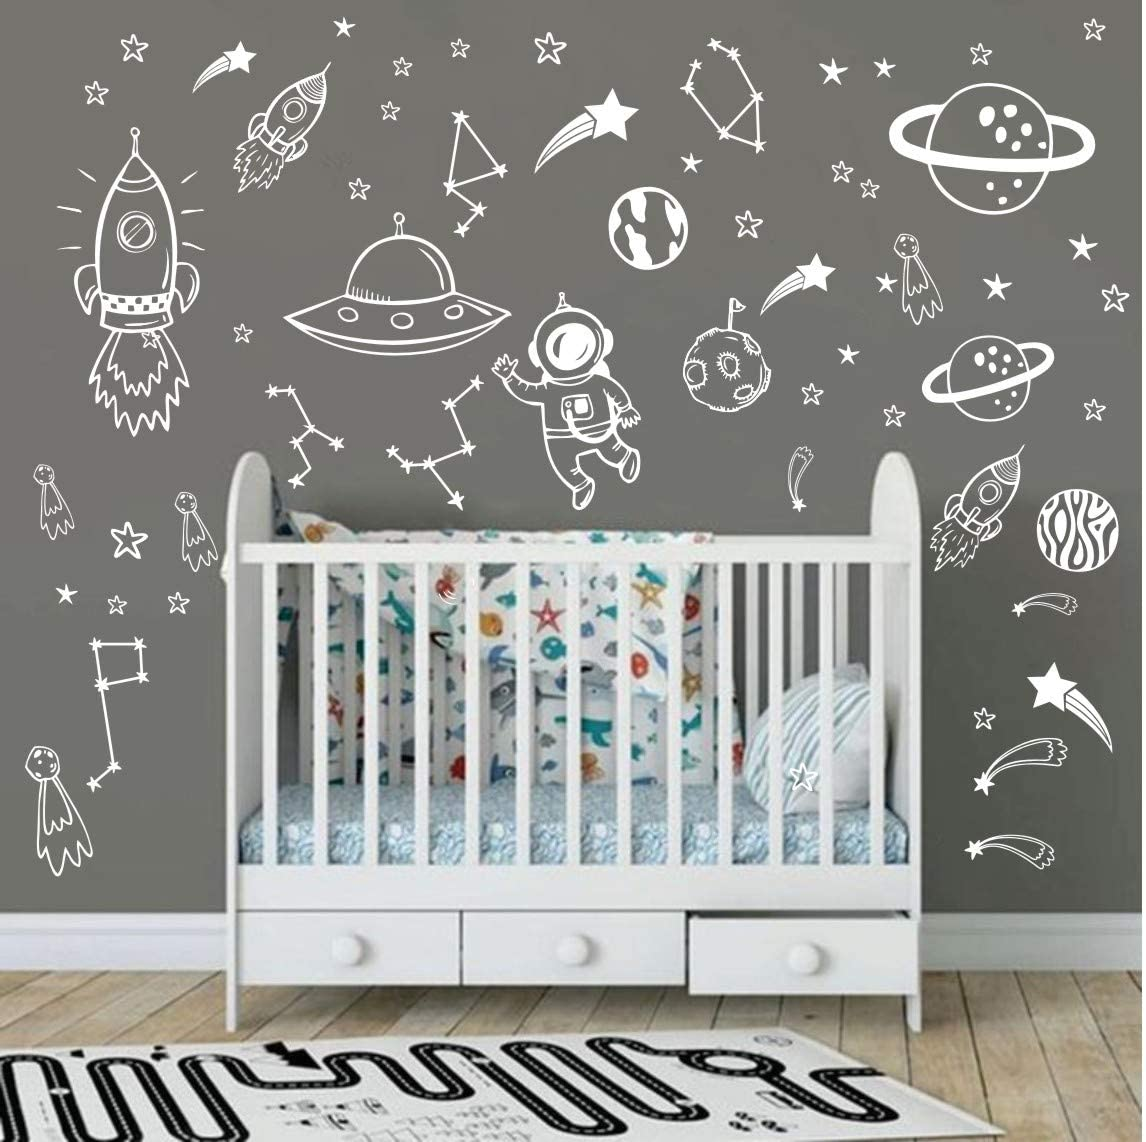 Wall Decor for Boys Room Art Outer Space Star Rockets Planets Stickers Removable Space Wall Decal for Children Bedroom Decoration (White)